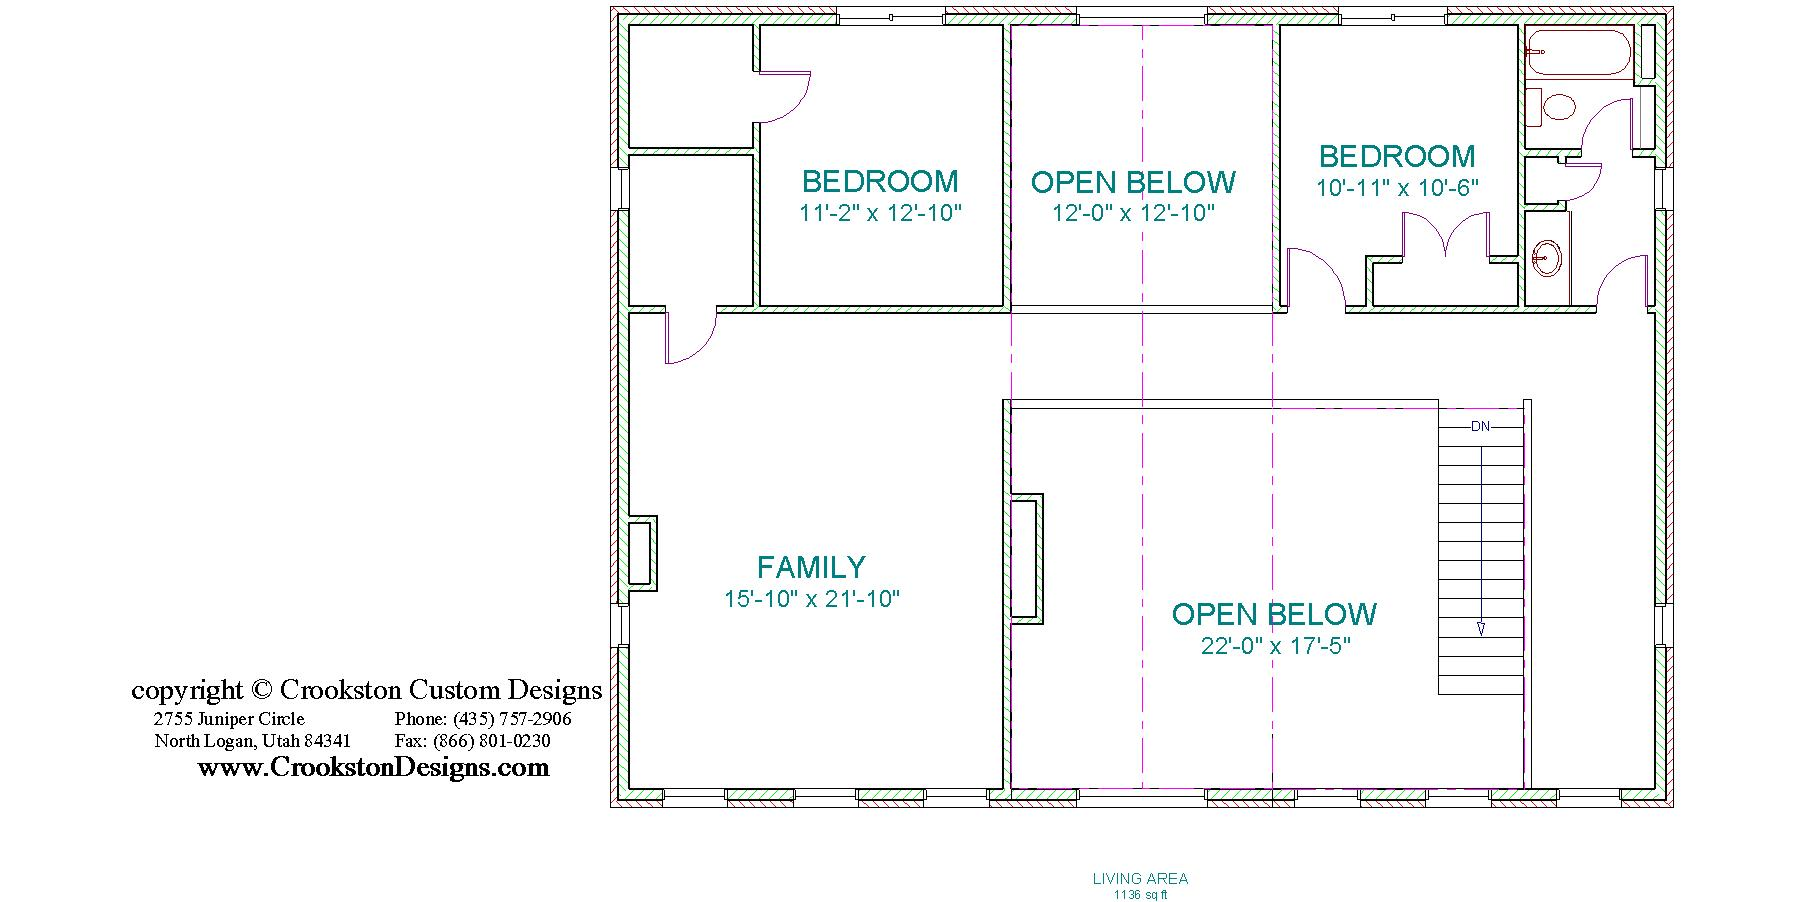 28 Sceond Floor Plan Universal Design 3 Bedrm 2247 Sq Ft Southern House Plan 153 1642